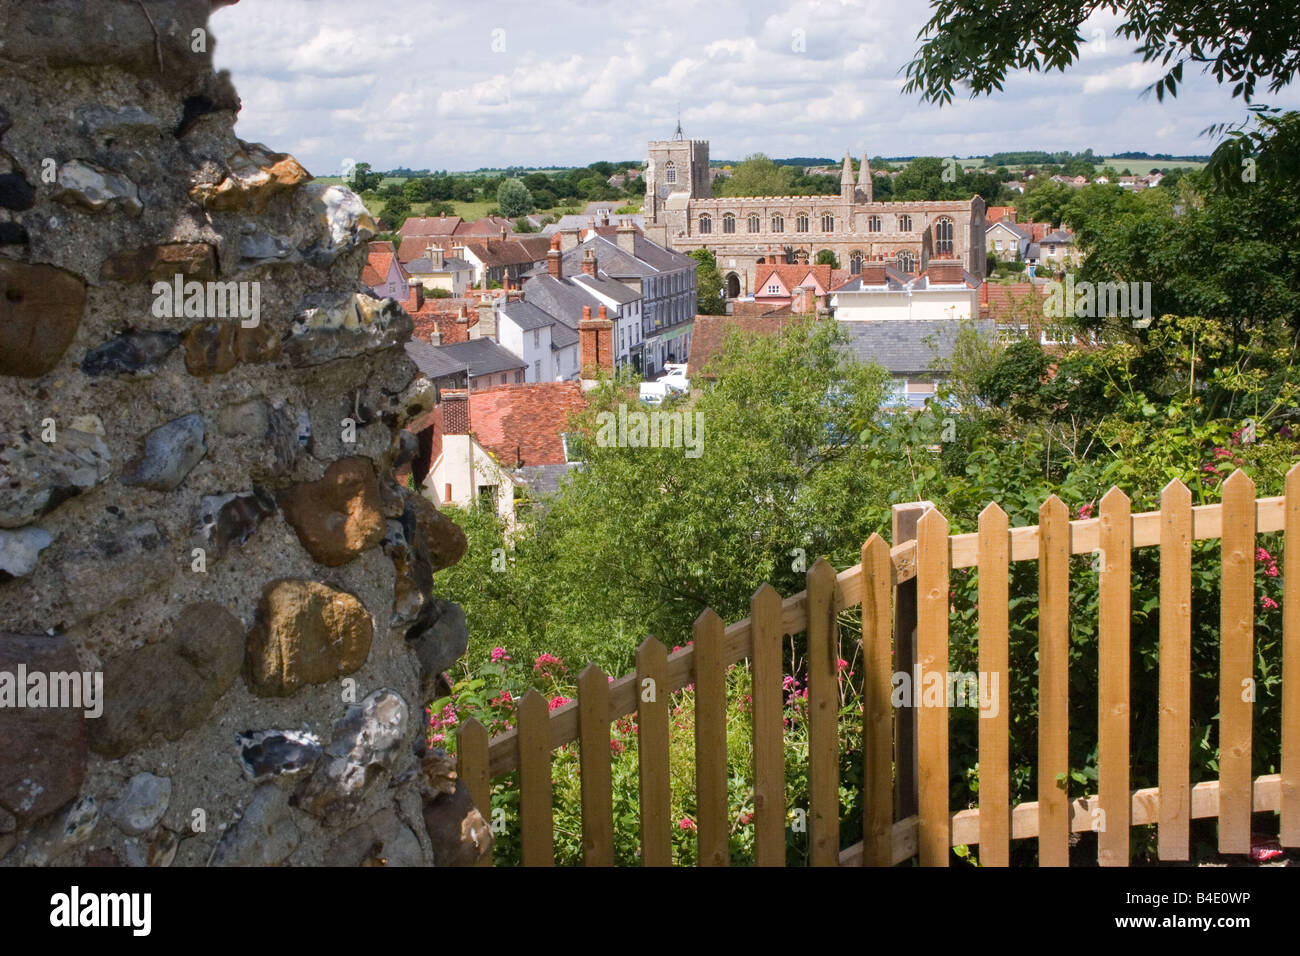 view of medieval town of Clare Suffolk England - Stock Image